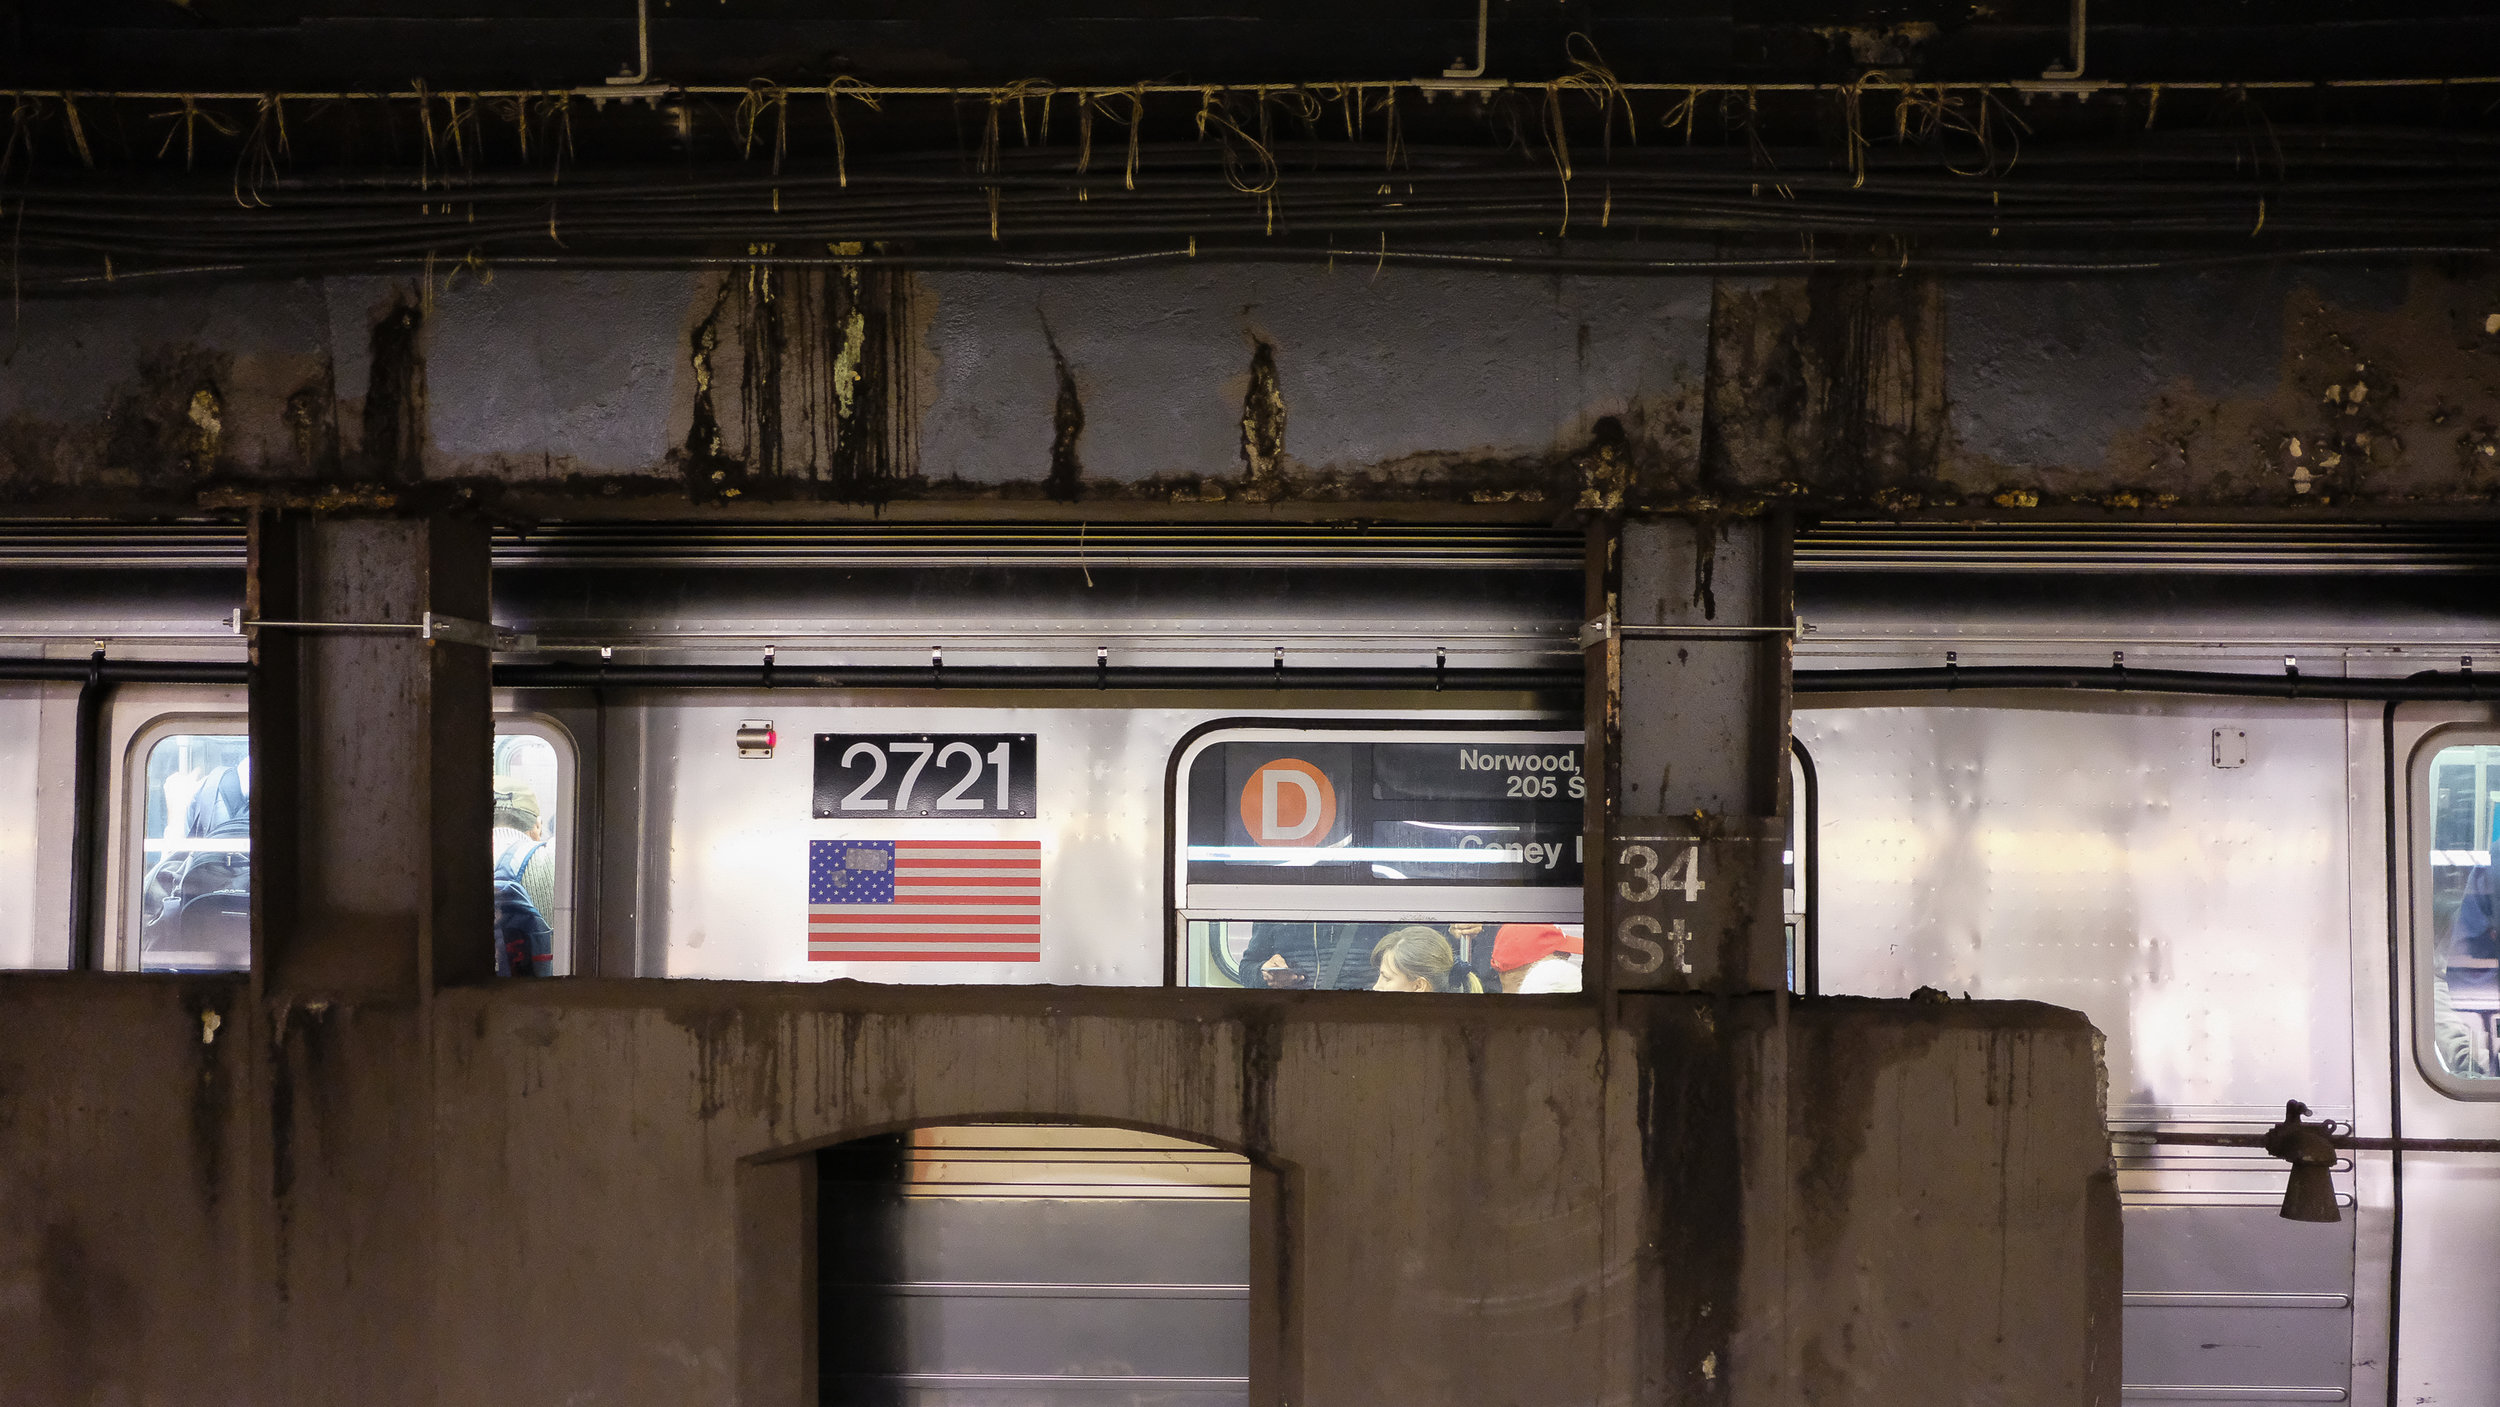 F, M, B and D trains. 34th Street.